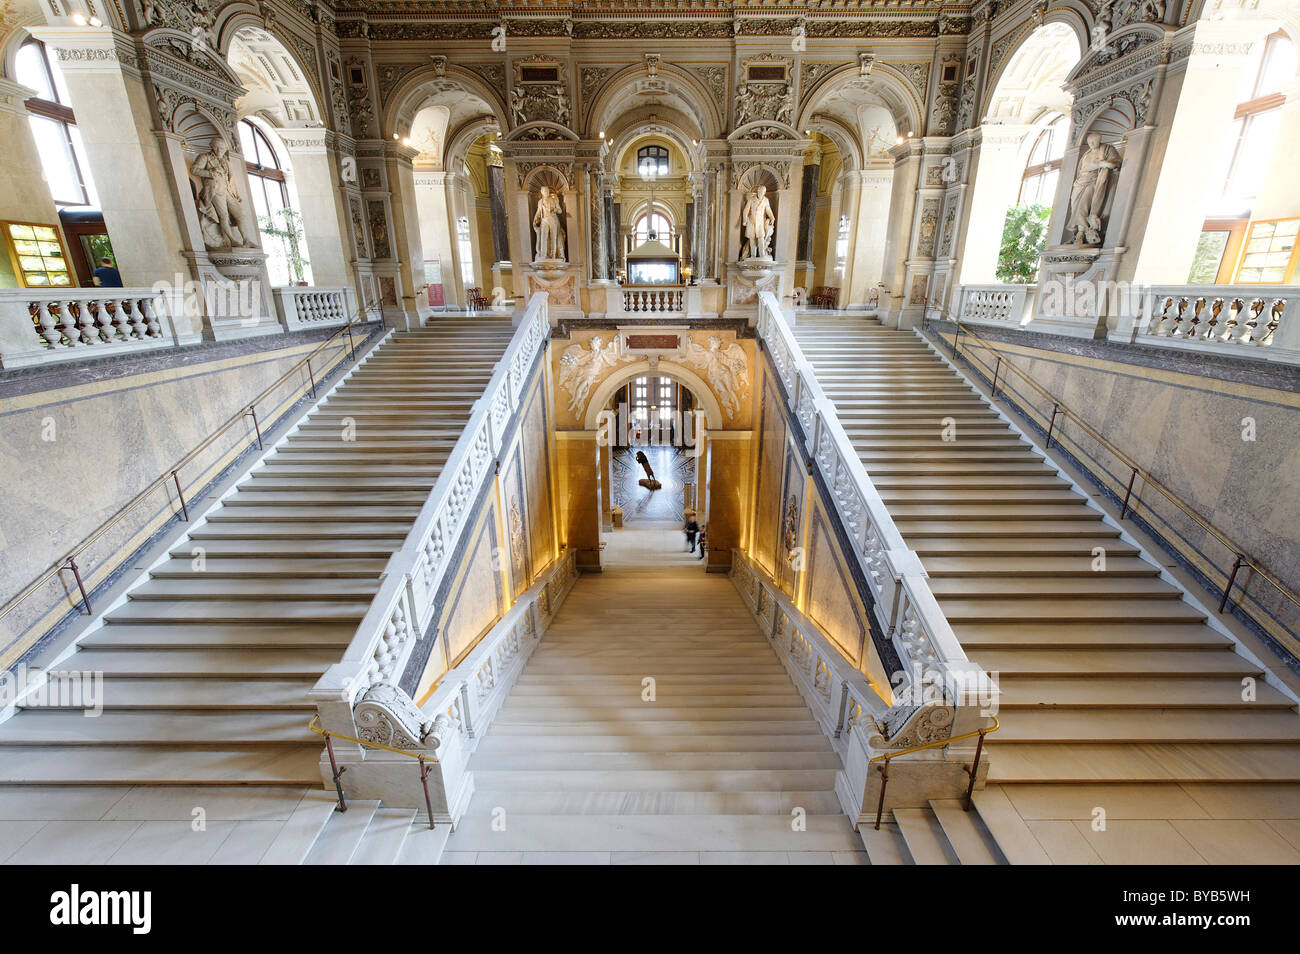 Staircase, cupola, Museum of Natural History, Maria Theresienplatz square, 1st district, Vienna, Austria, Europe - Stock Image